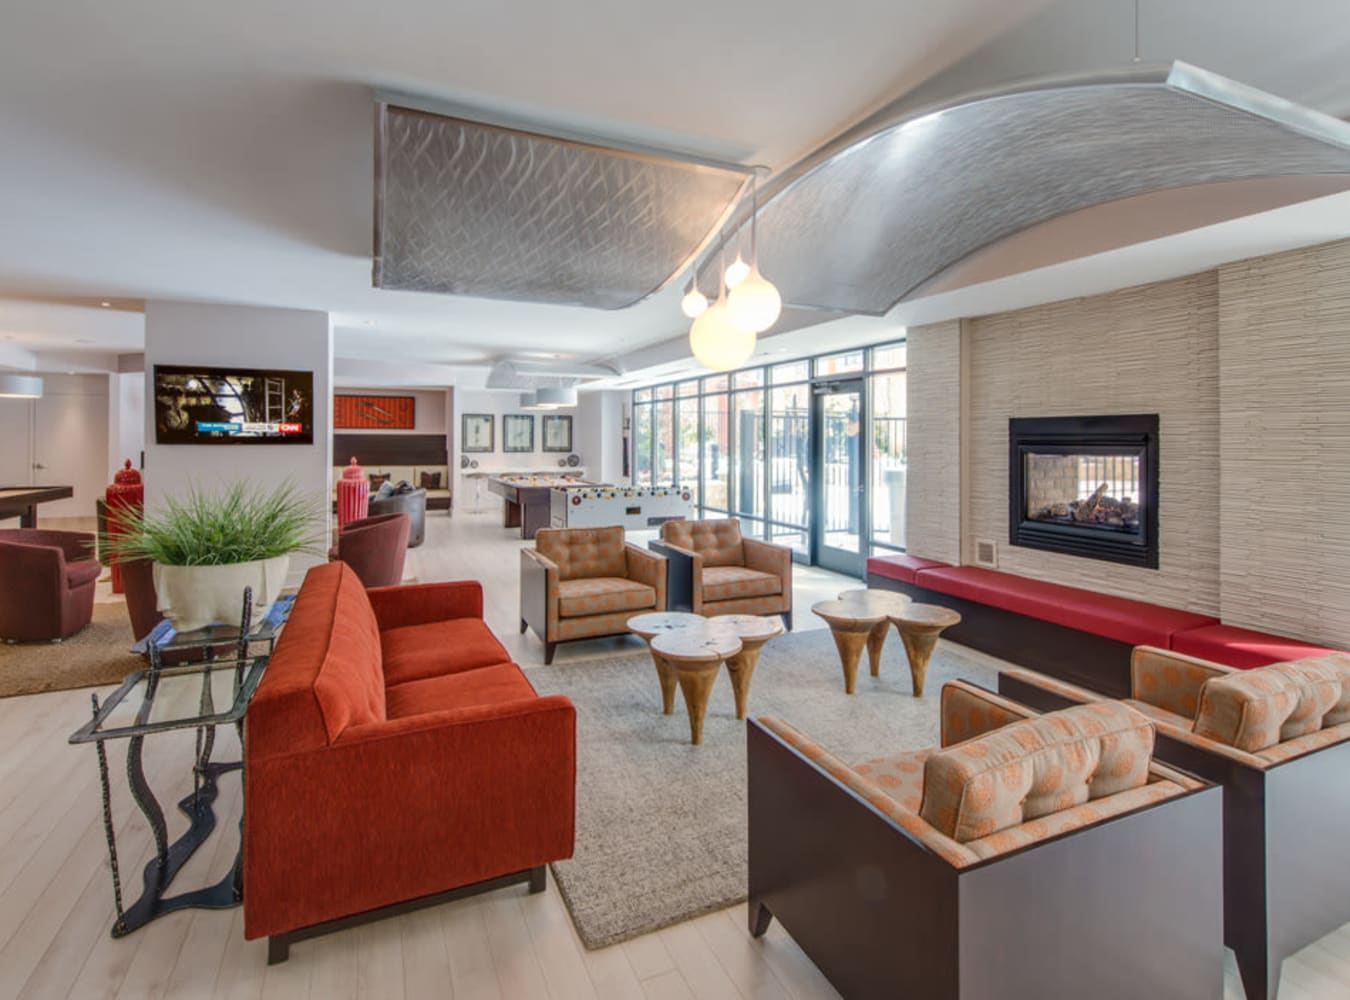 Lounge with large fireplace at  in Silver Spring, MD